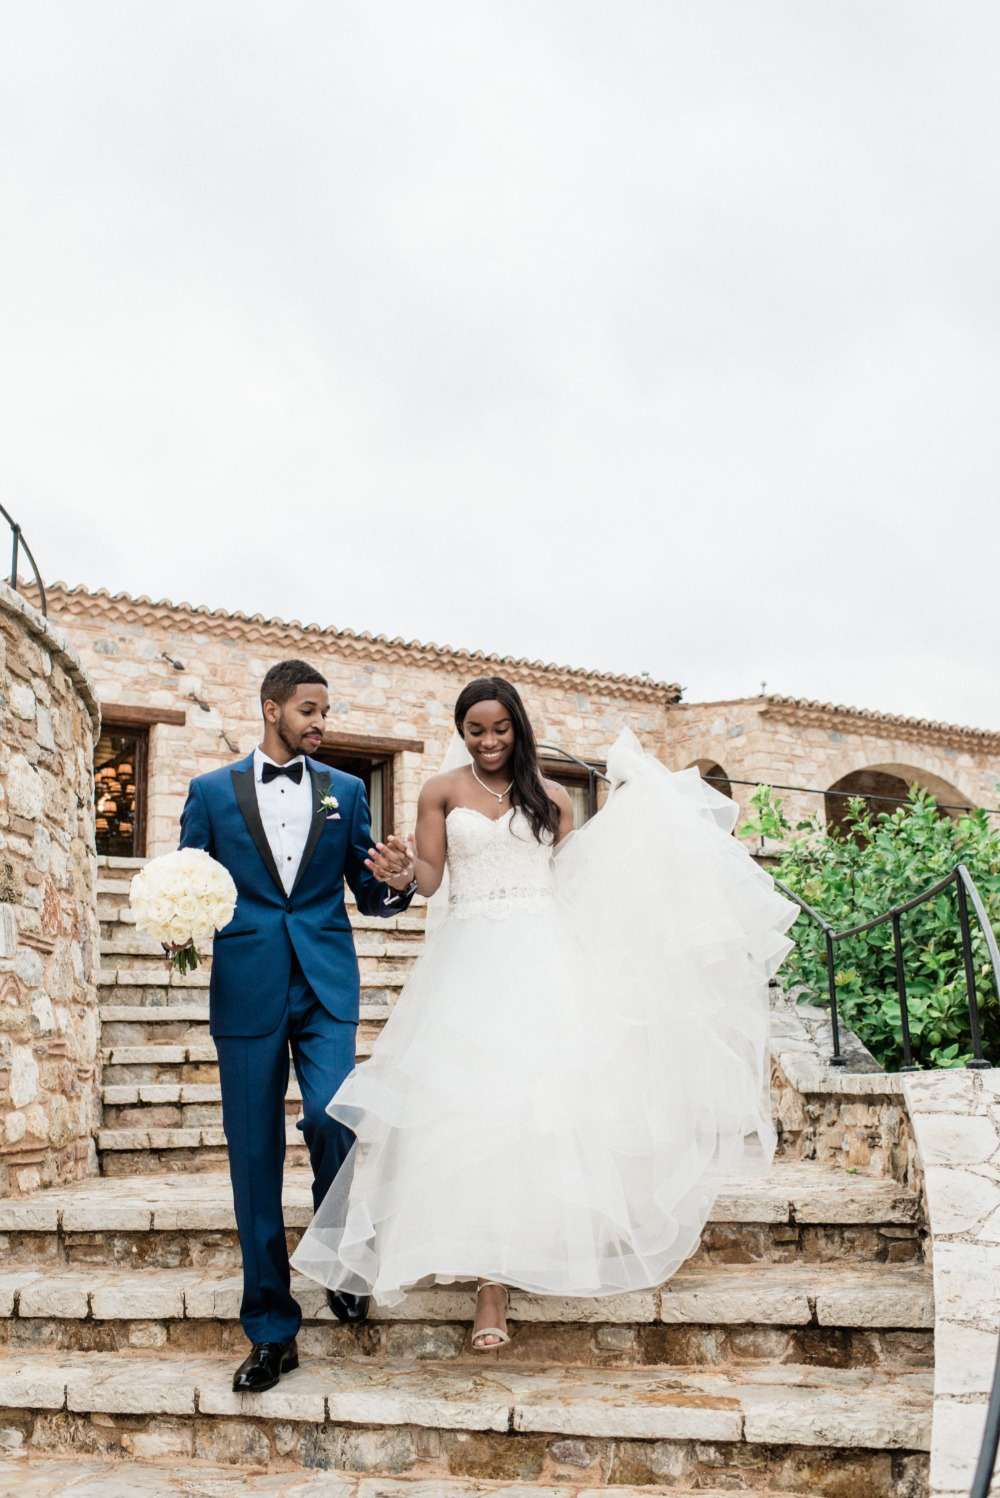 Brenae and Ryan's Romantic Destination Wedding in Greece gallery image 14